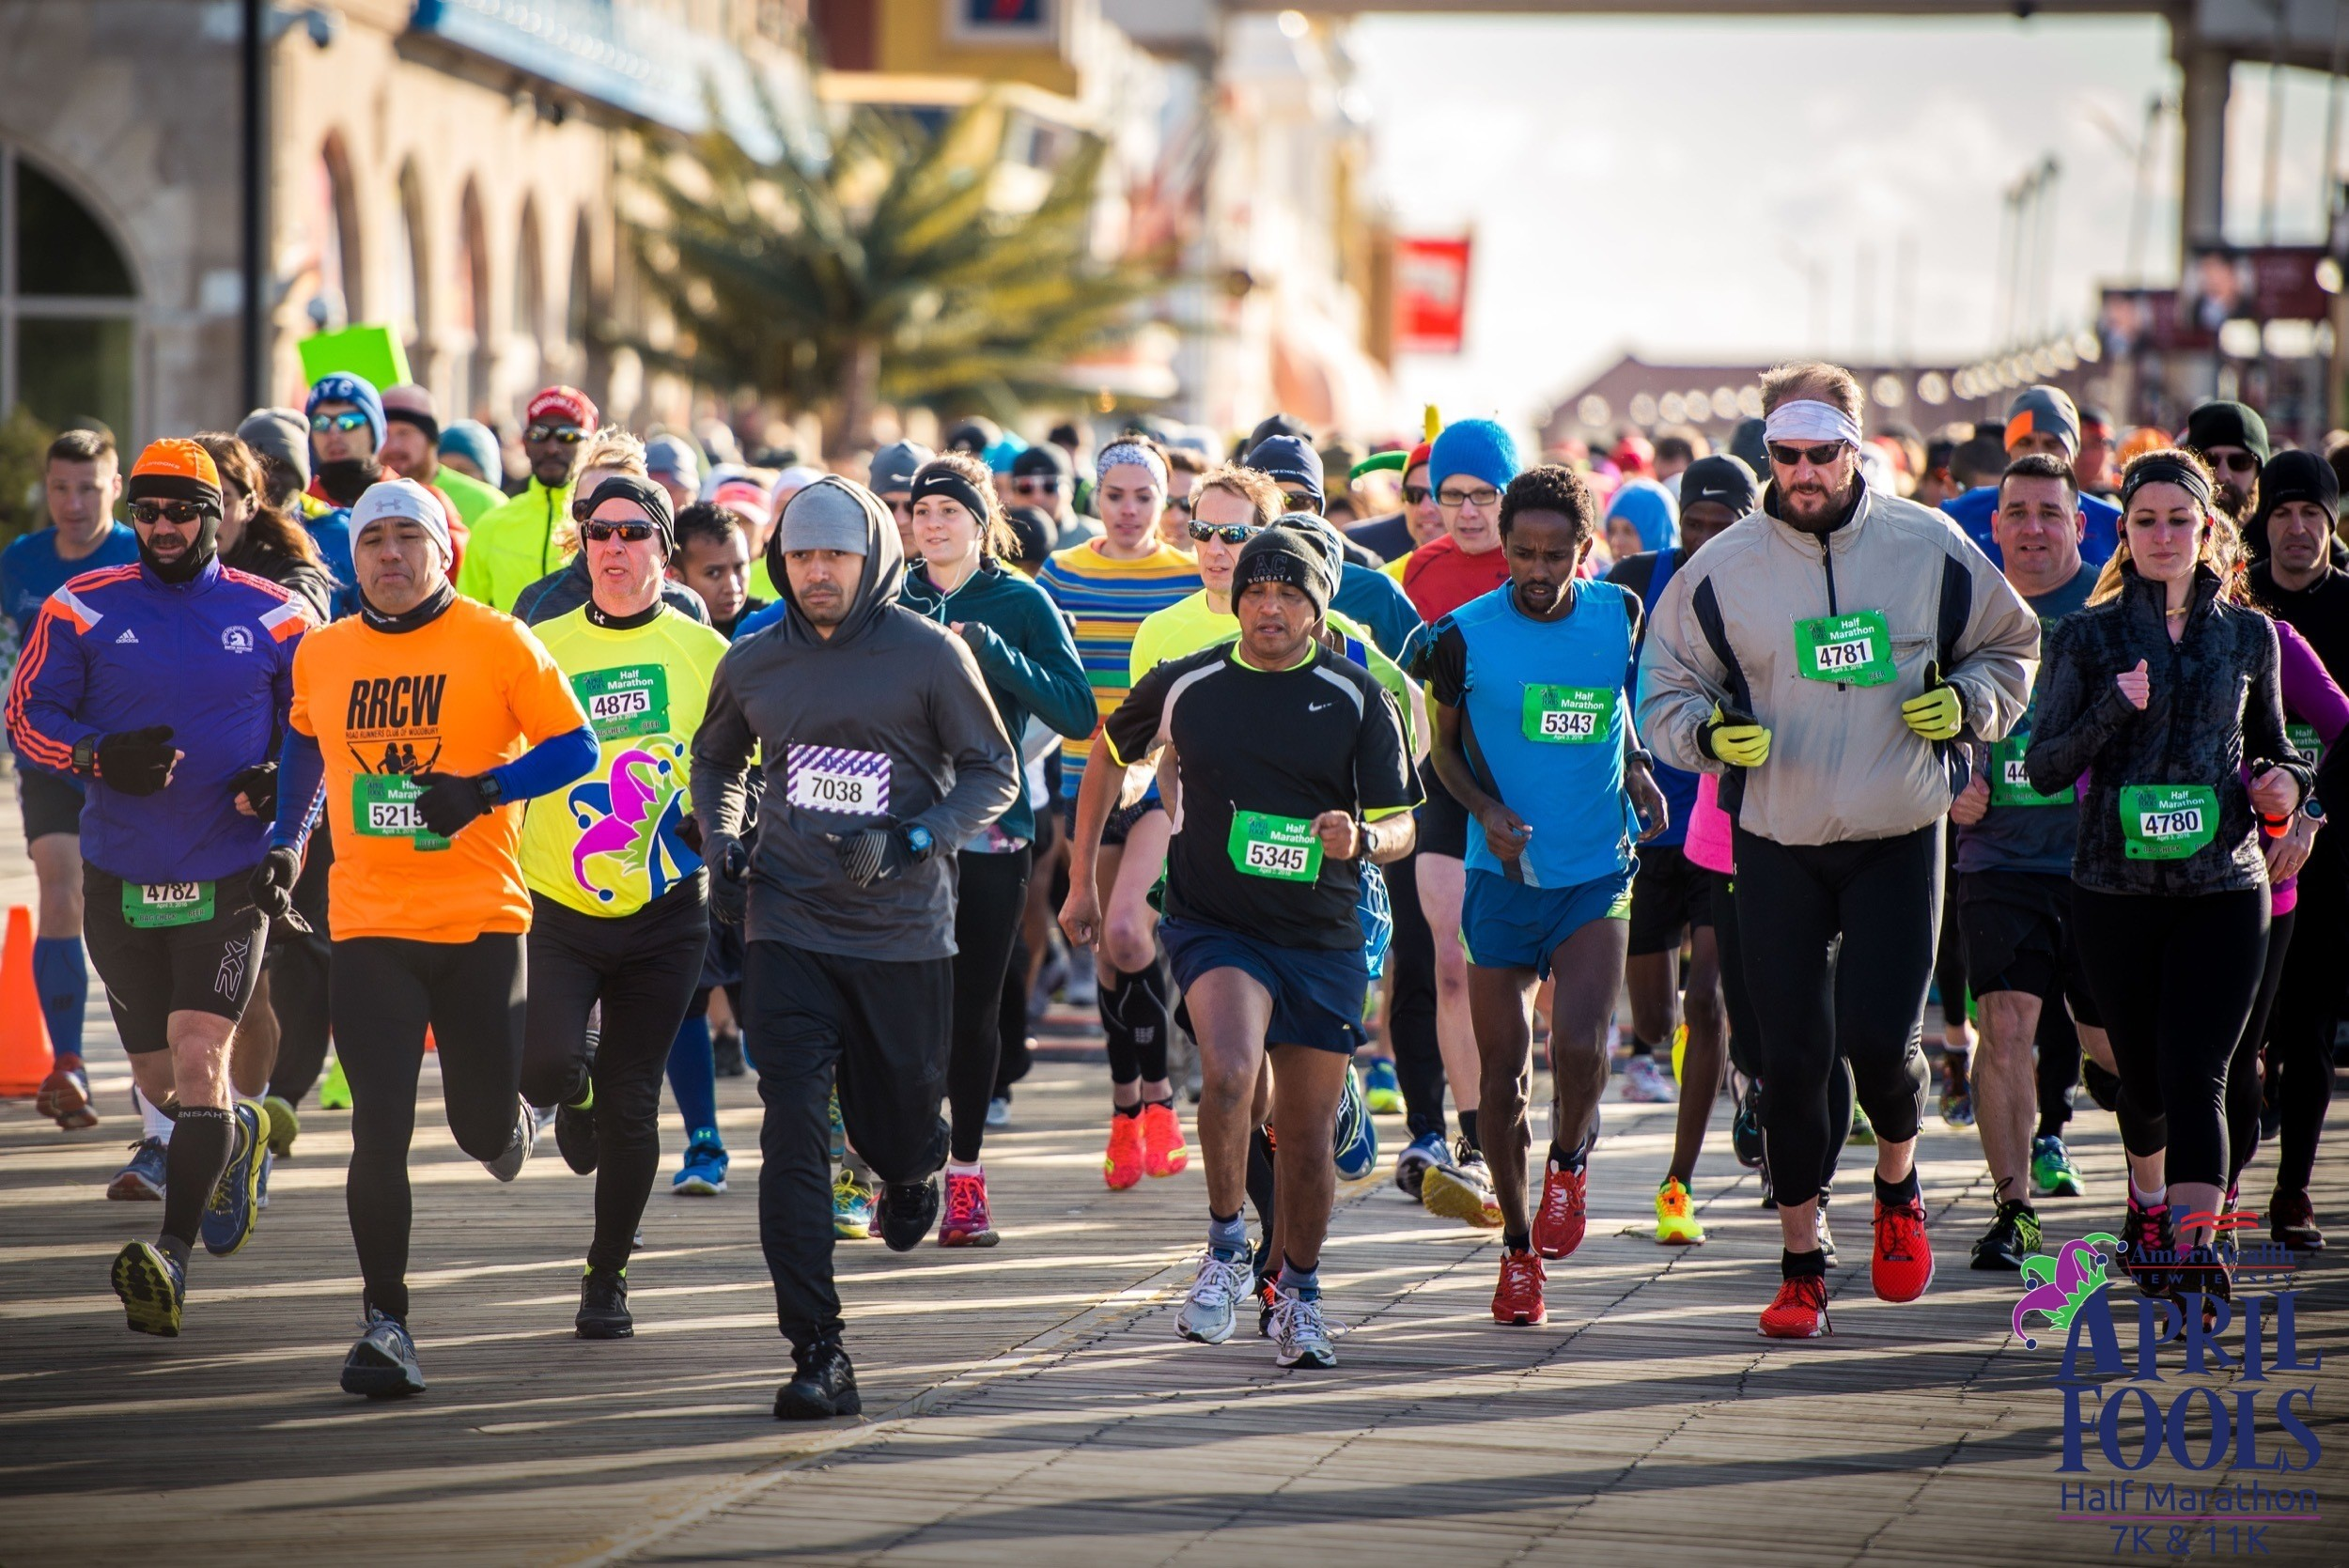 Lace up and get ready to run, Atlantic City plans April Fools Half Marathon and 8K